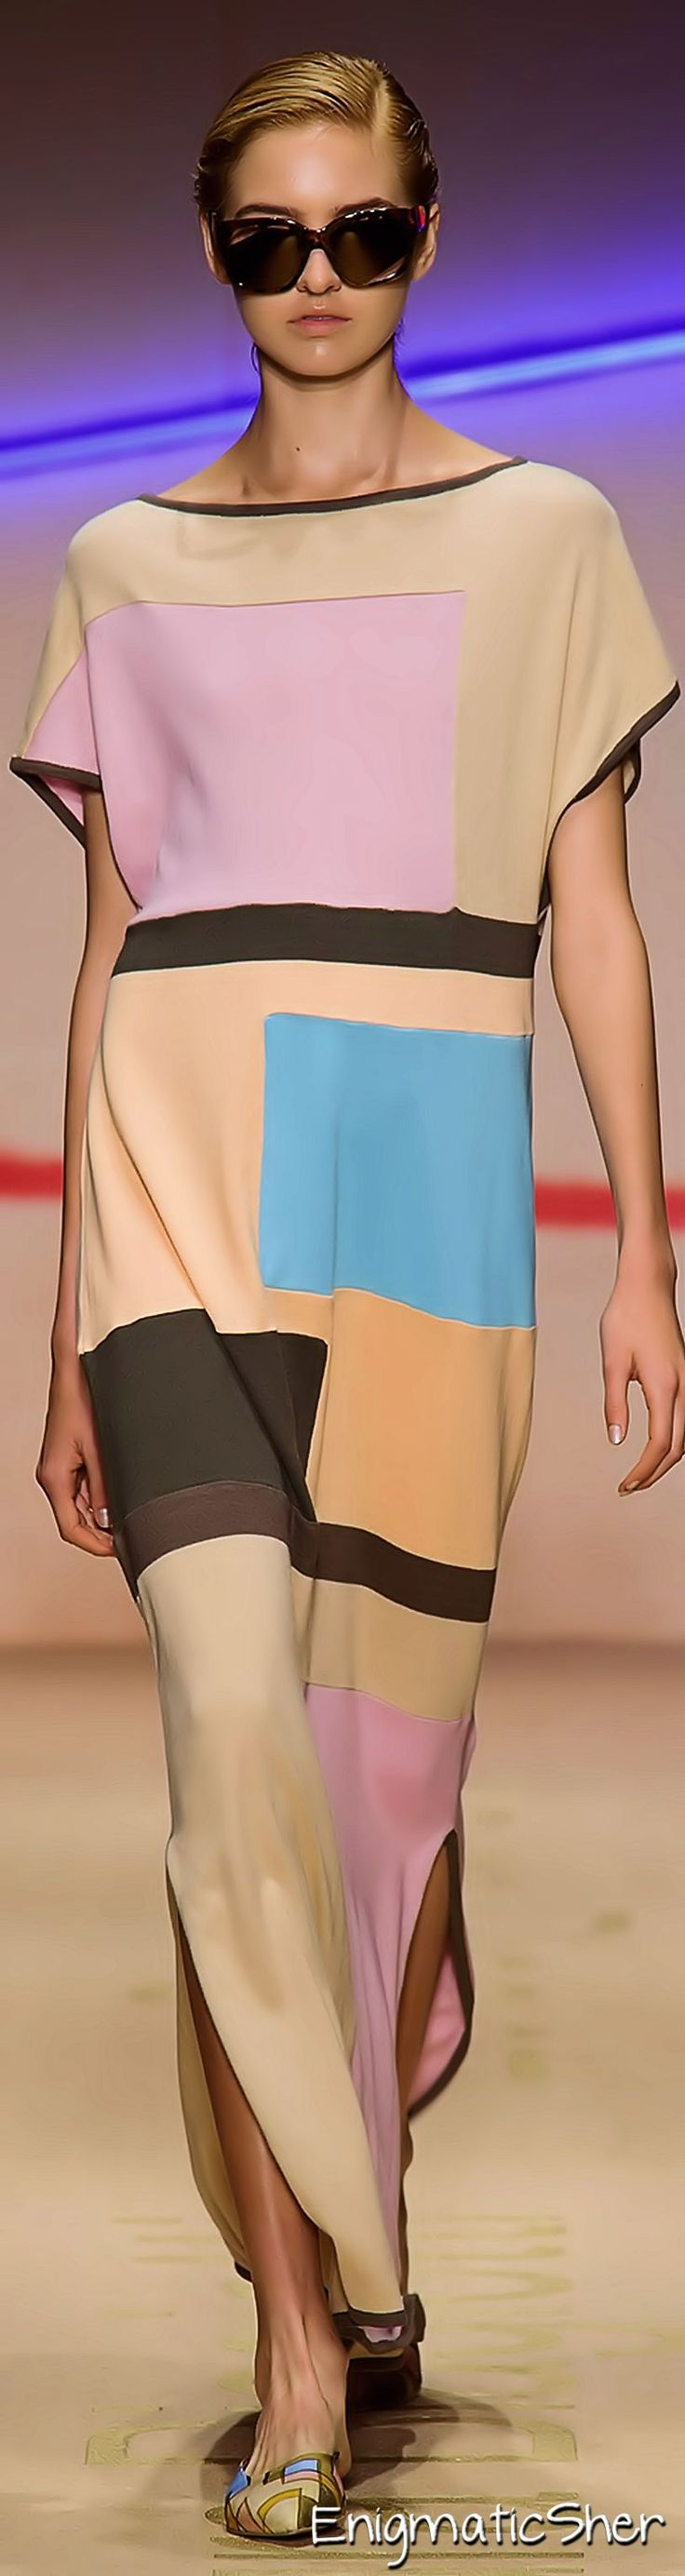 Laura Biagiotti Spring Summer 2015 Ready-To-Wear - what a fun dress to throw over a bathing suit at the hotel pool.